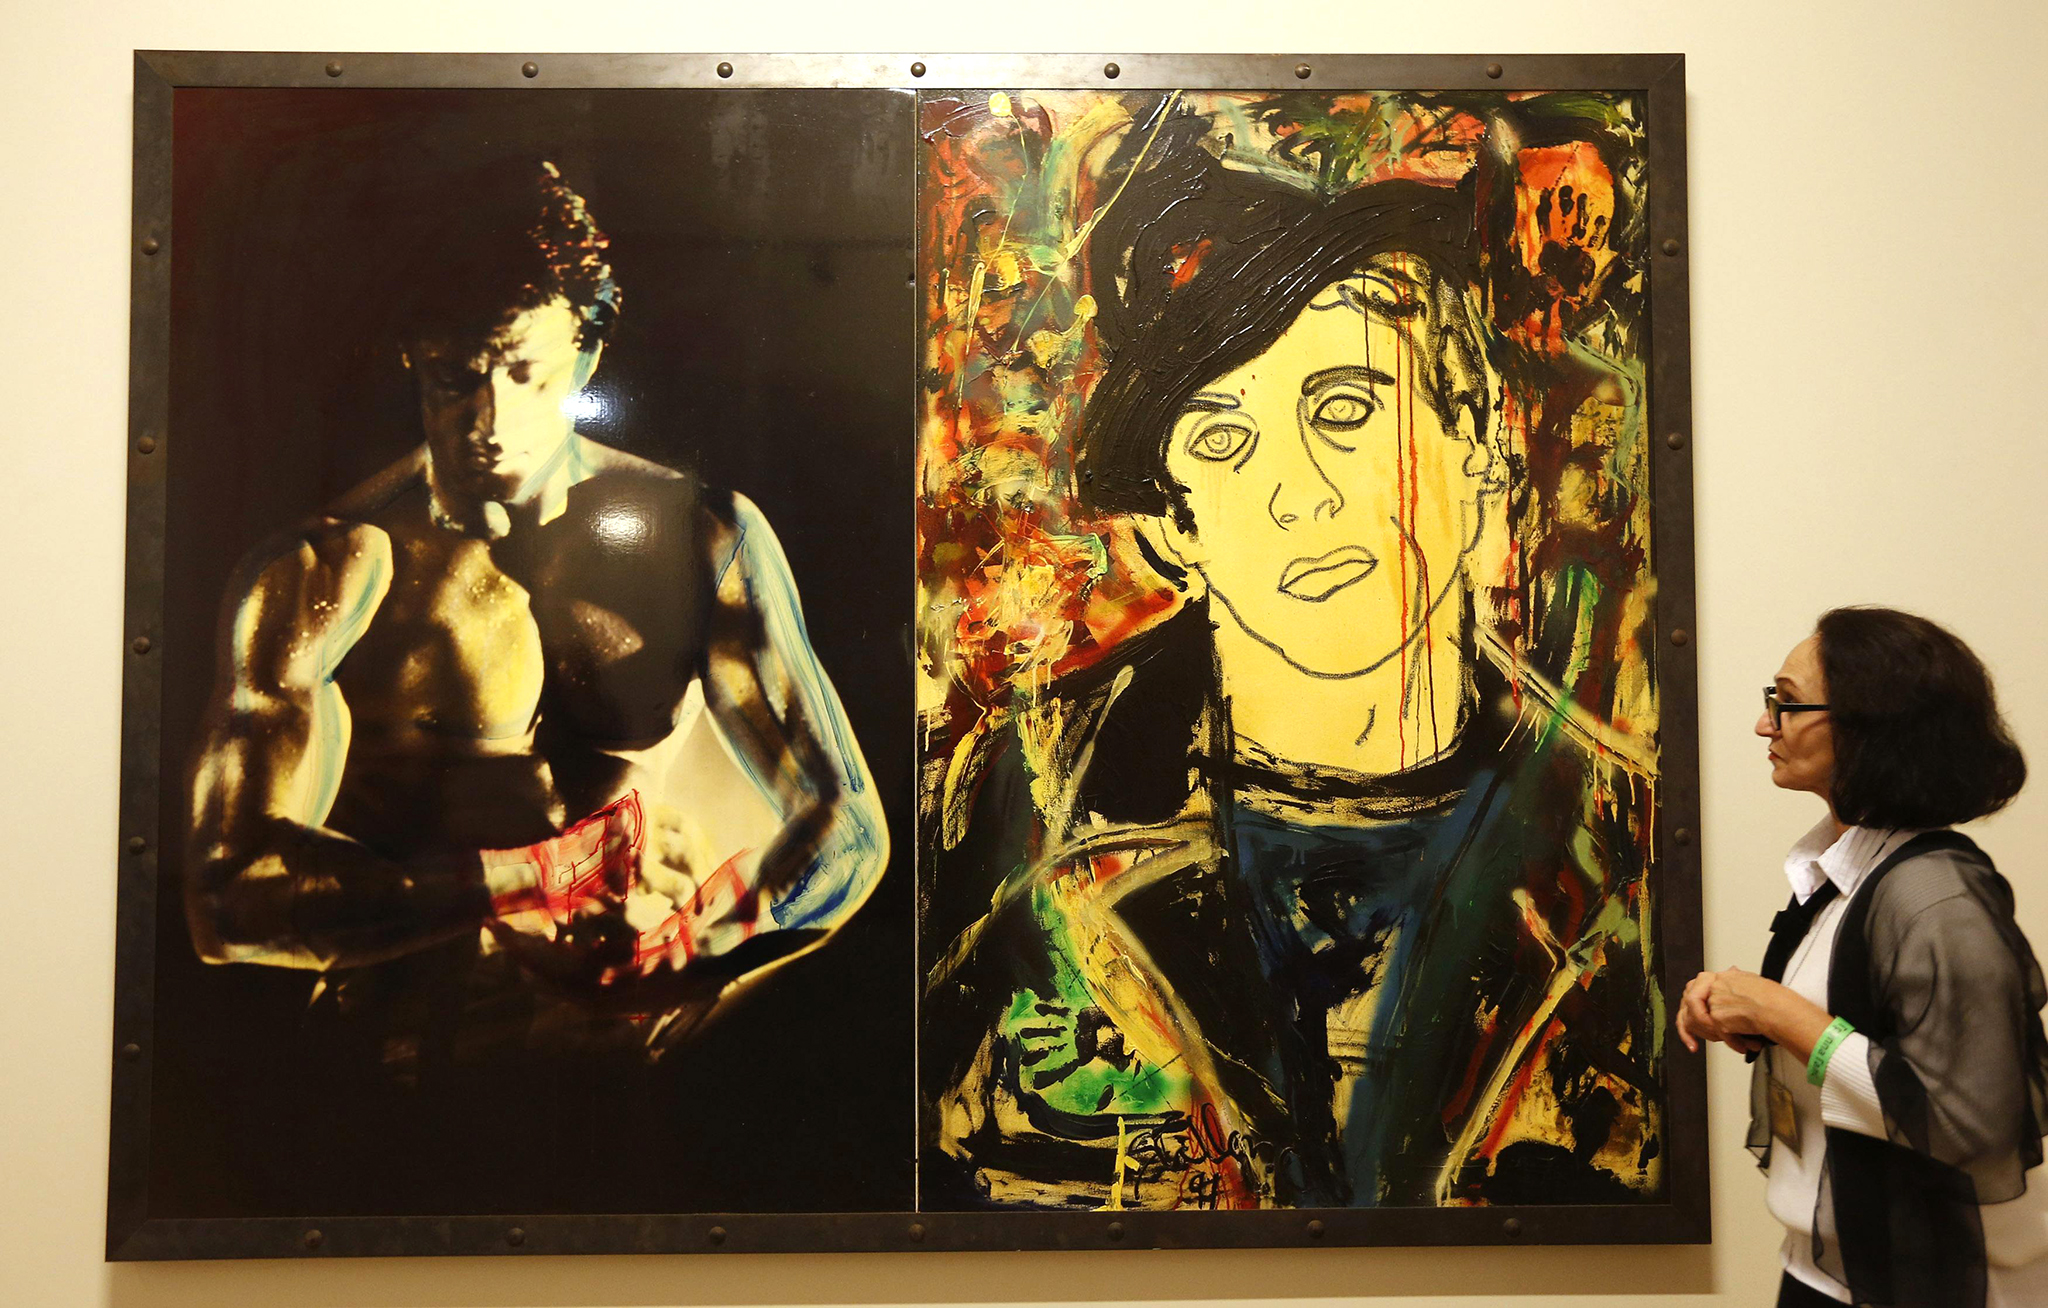 Sylvester Stallone's artwork on display in St. Petersburg. (Reuters)